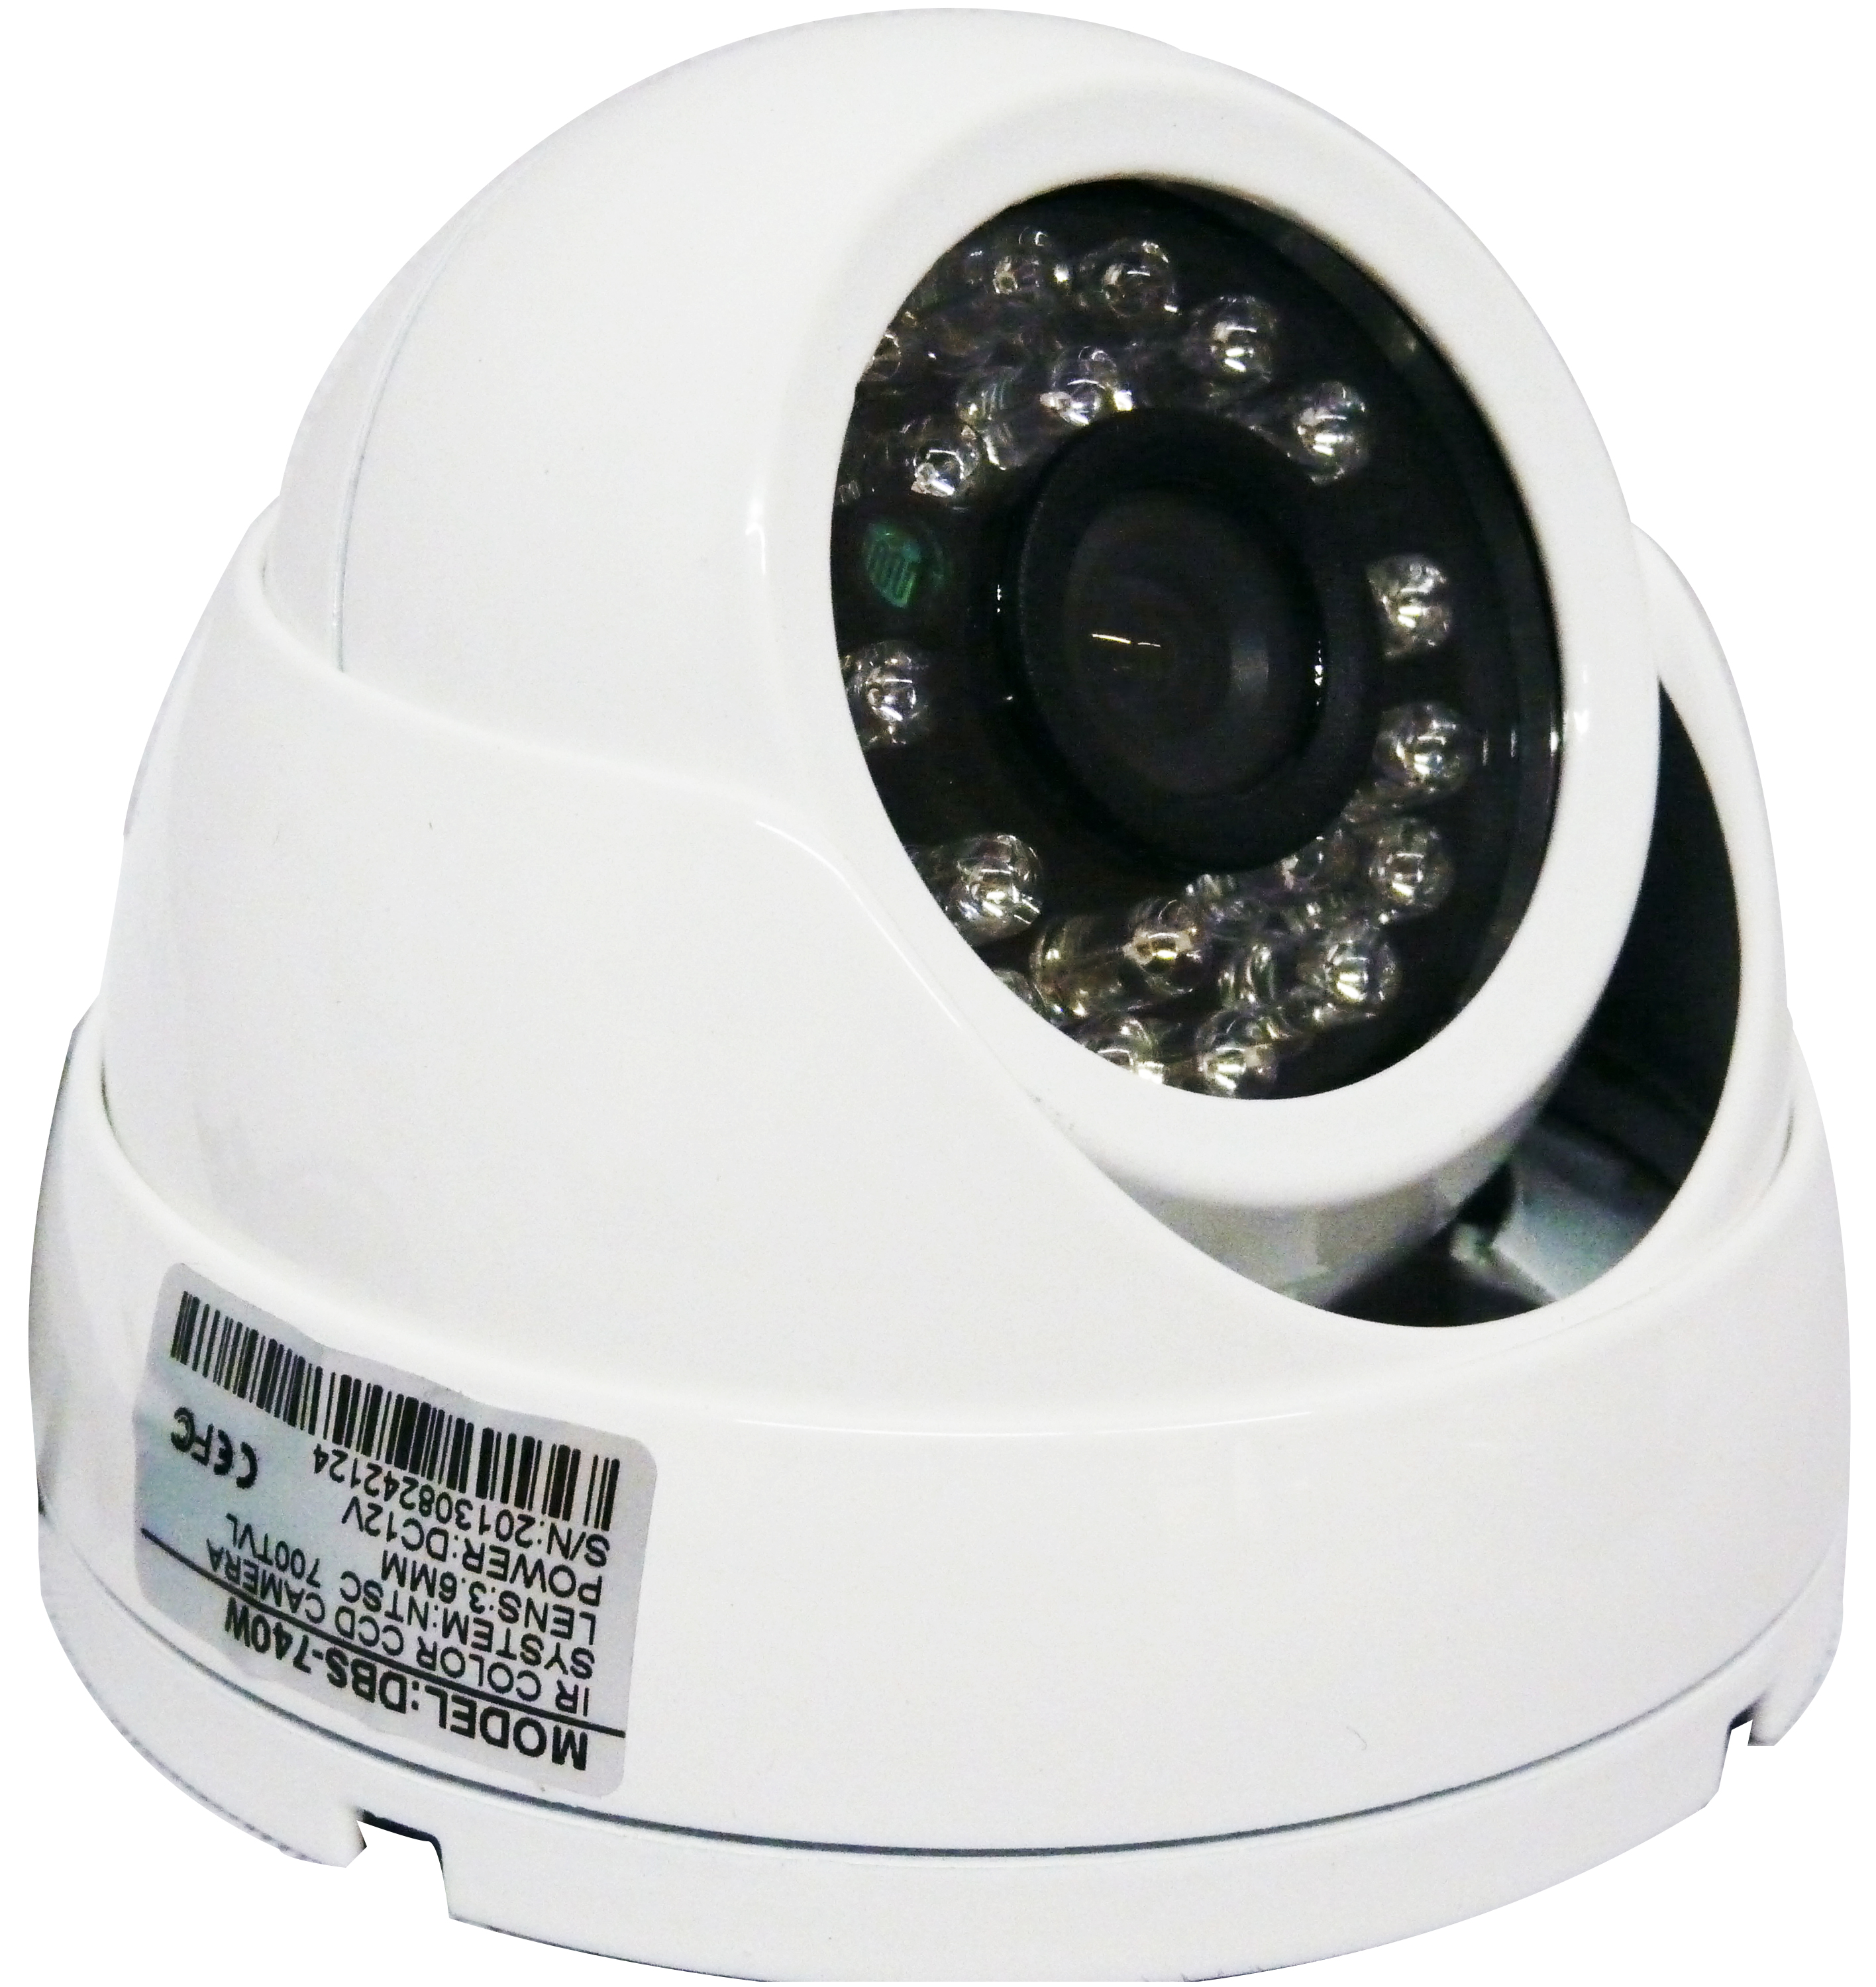 Image for DBS 740W - 700TVL CCTV Dome Security Camera - 1/3'' Sony Super HAD CCD II